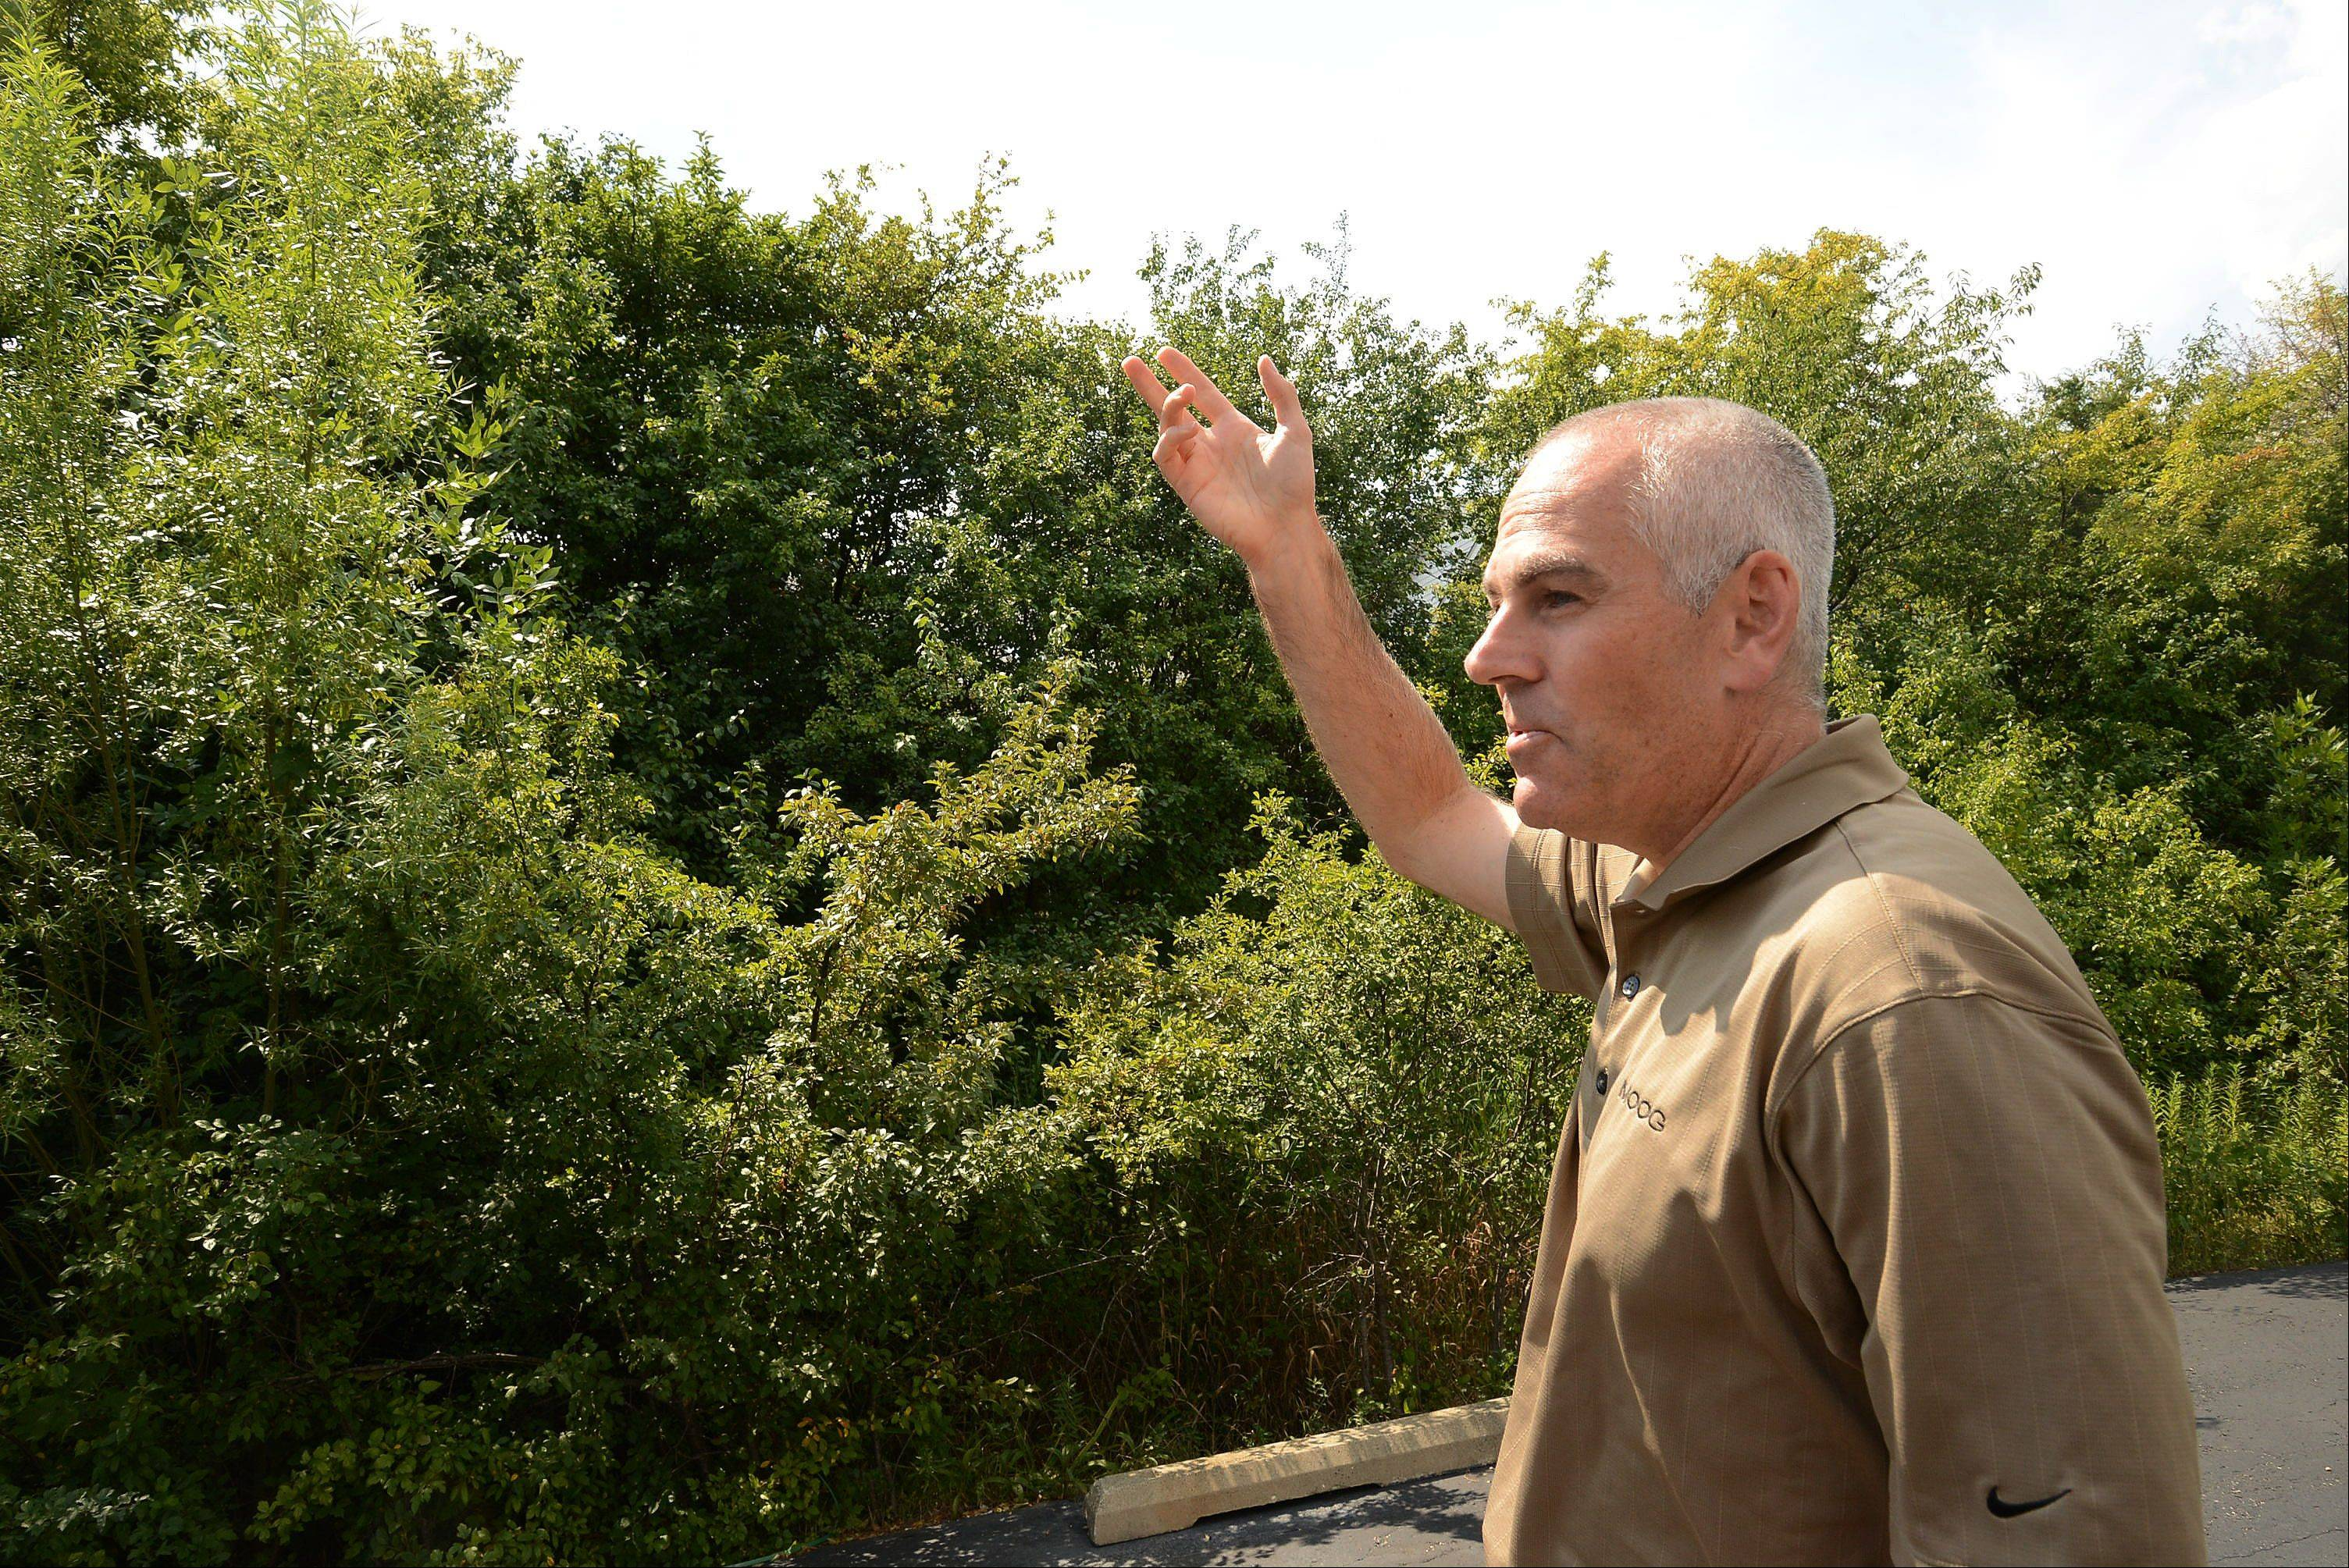 Weedy trees have been growing for years on a small patch of ground behind the parking lot for Quality Hydrualics in Mundelein. But company president John Felsenthal notes that he has no legal obligation to trim branches that grow over the fence and anger gardener and homeowner Robin Sachs.